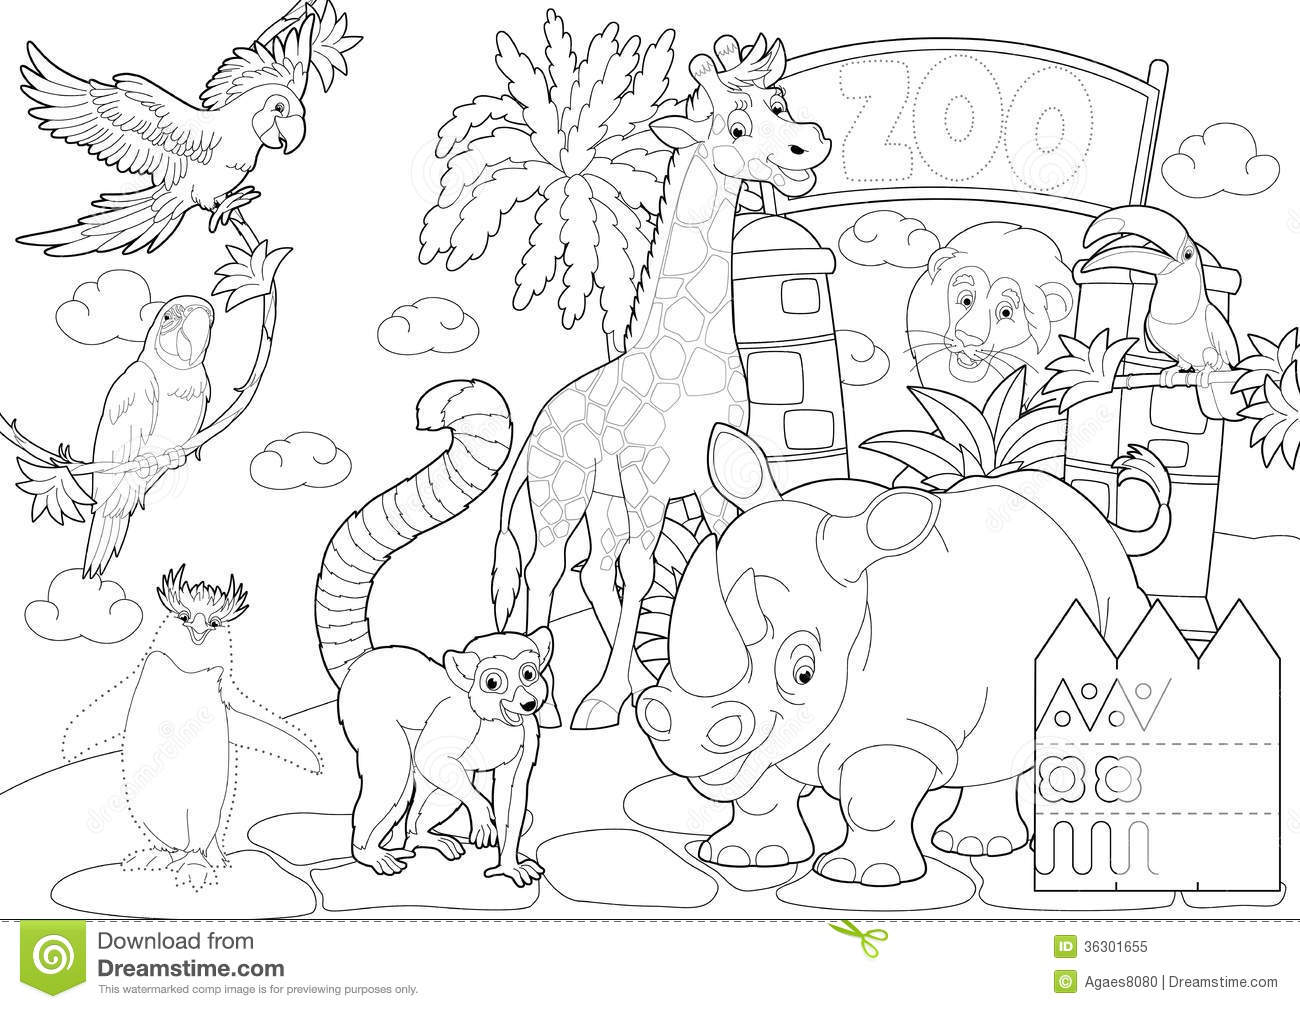 Coloring page the zoo illustration for the children for Coloring pages zoo